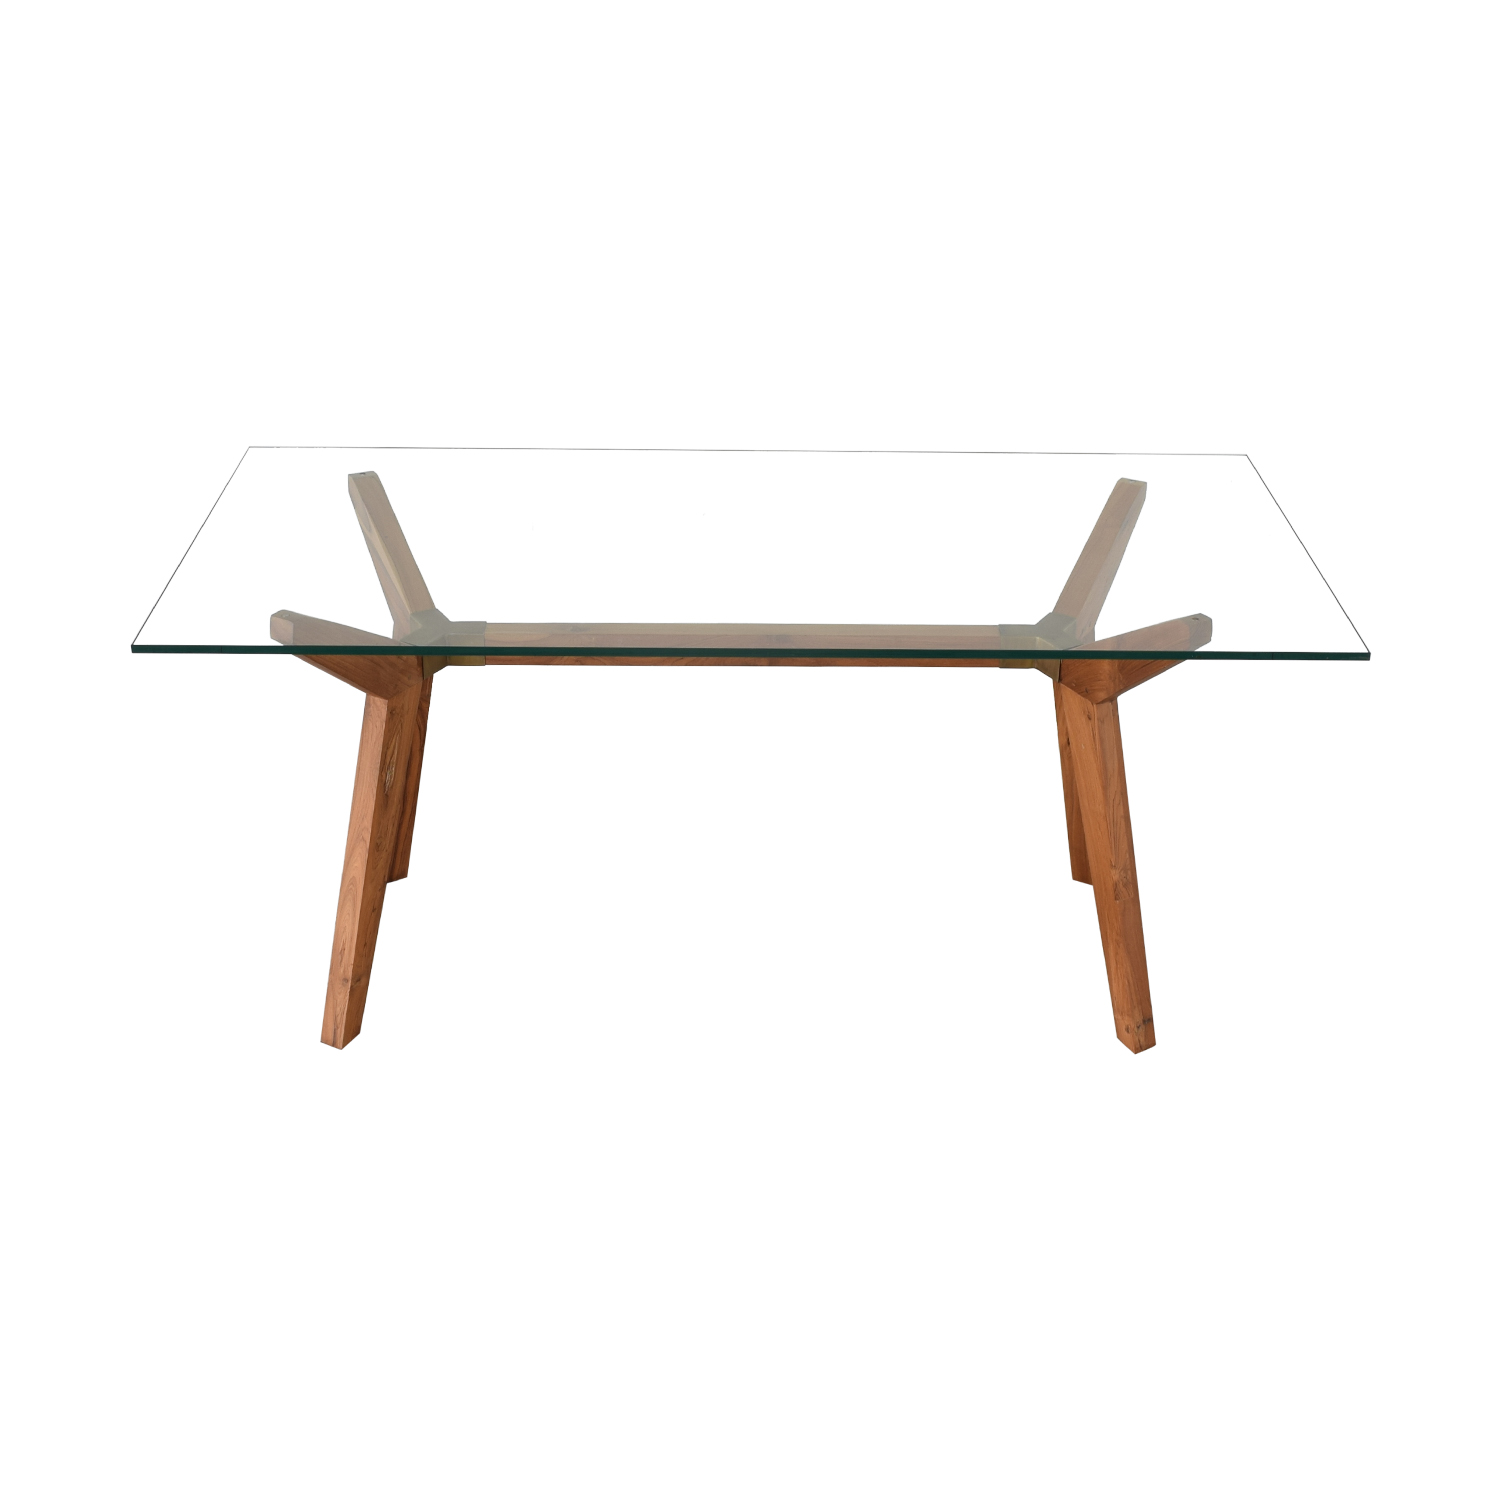 Crate & Barrel Crate & Barrel Strut Table clear and brown